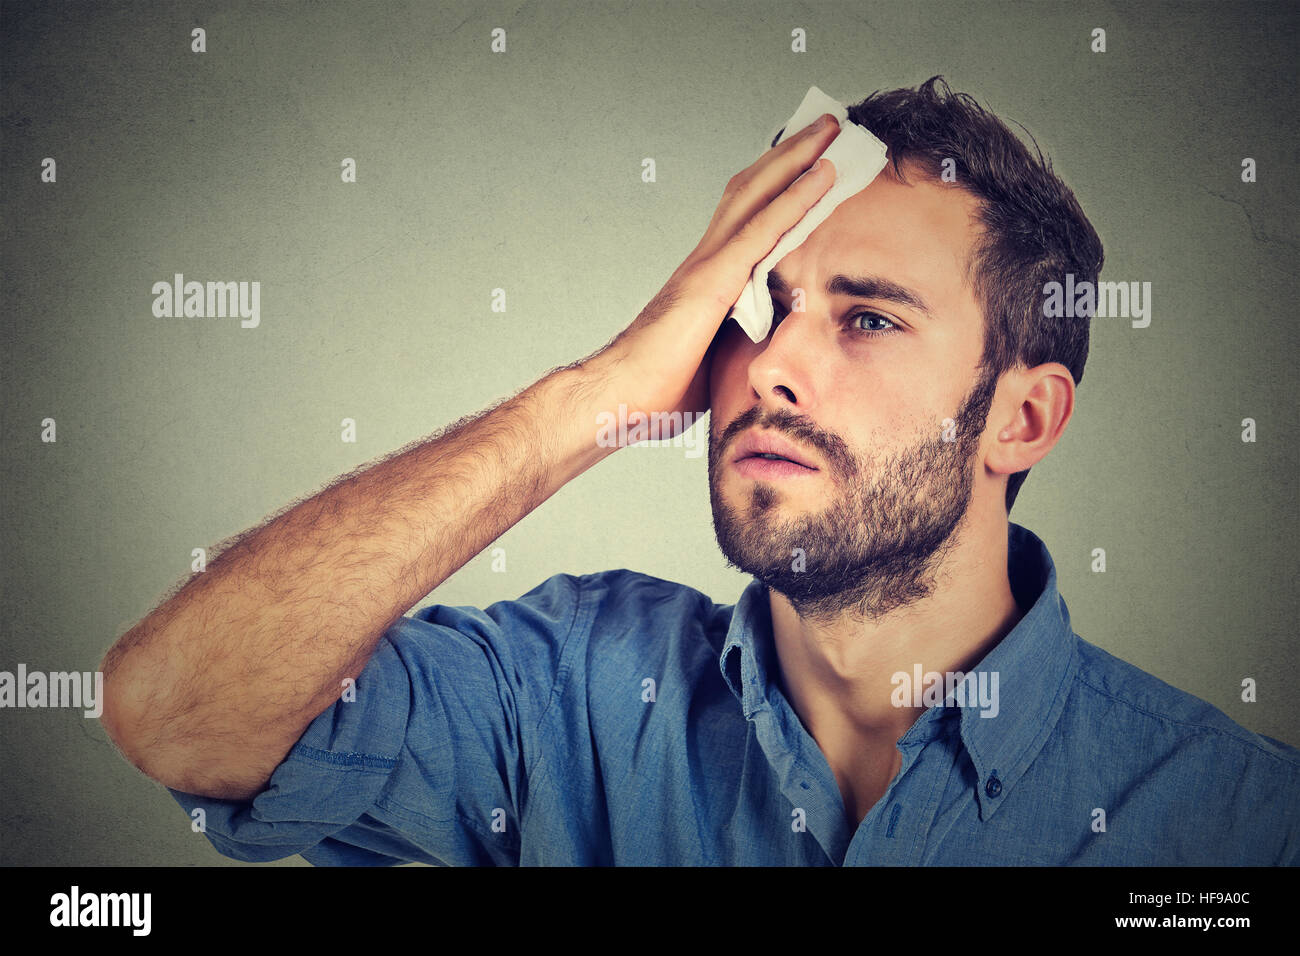 Tired man stressed sweating having fever headache isolated on gray wall background. Worried guy wipes sweat on his - Stock Image